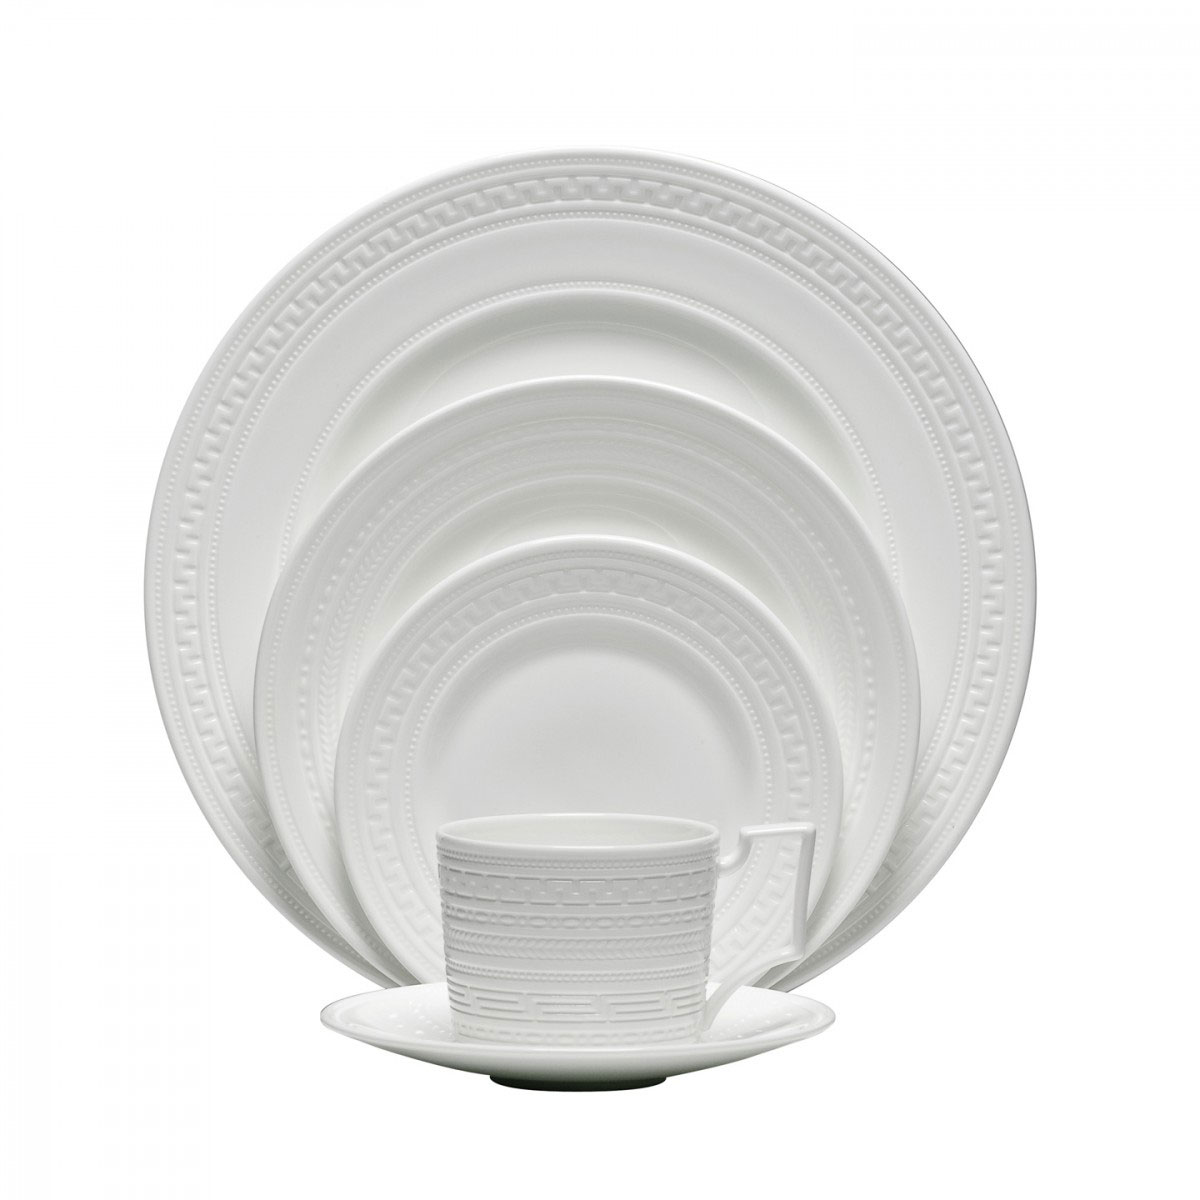 Wedgwood China Intaglio, 5 Piece Place Setting